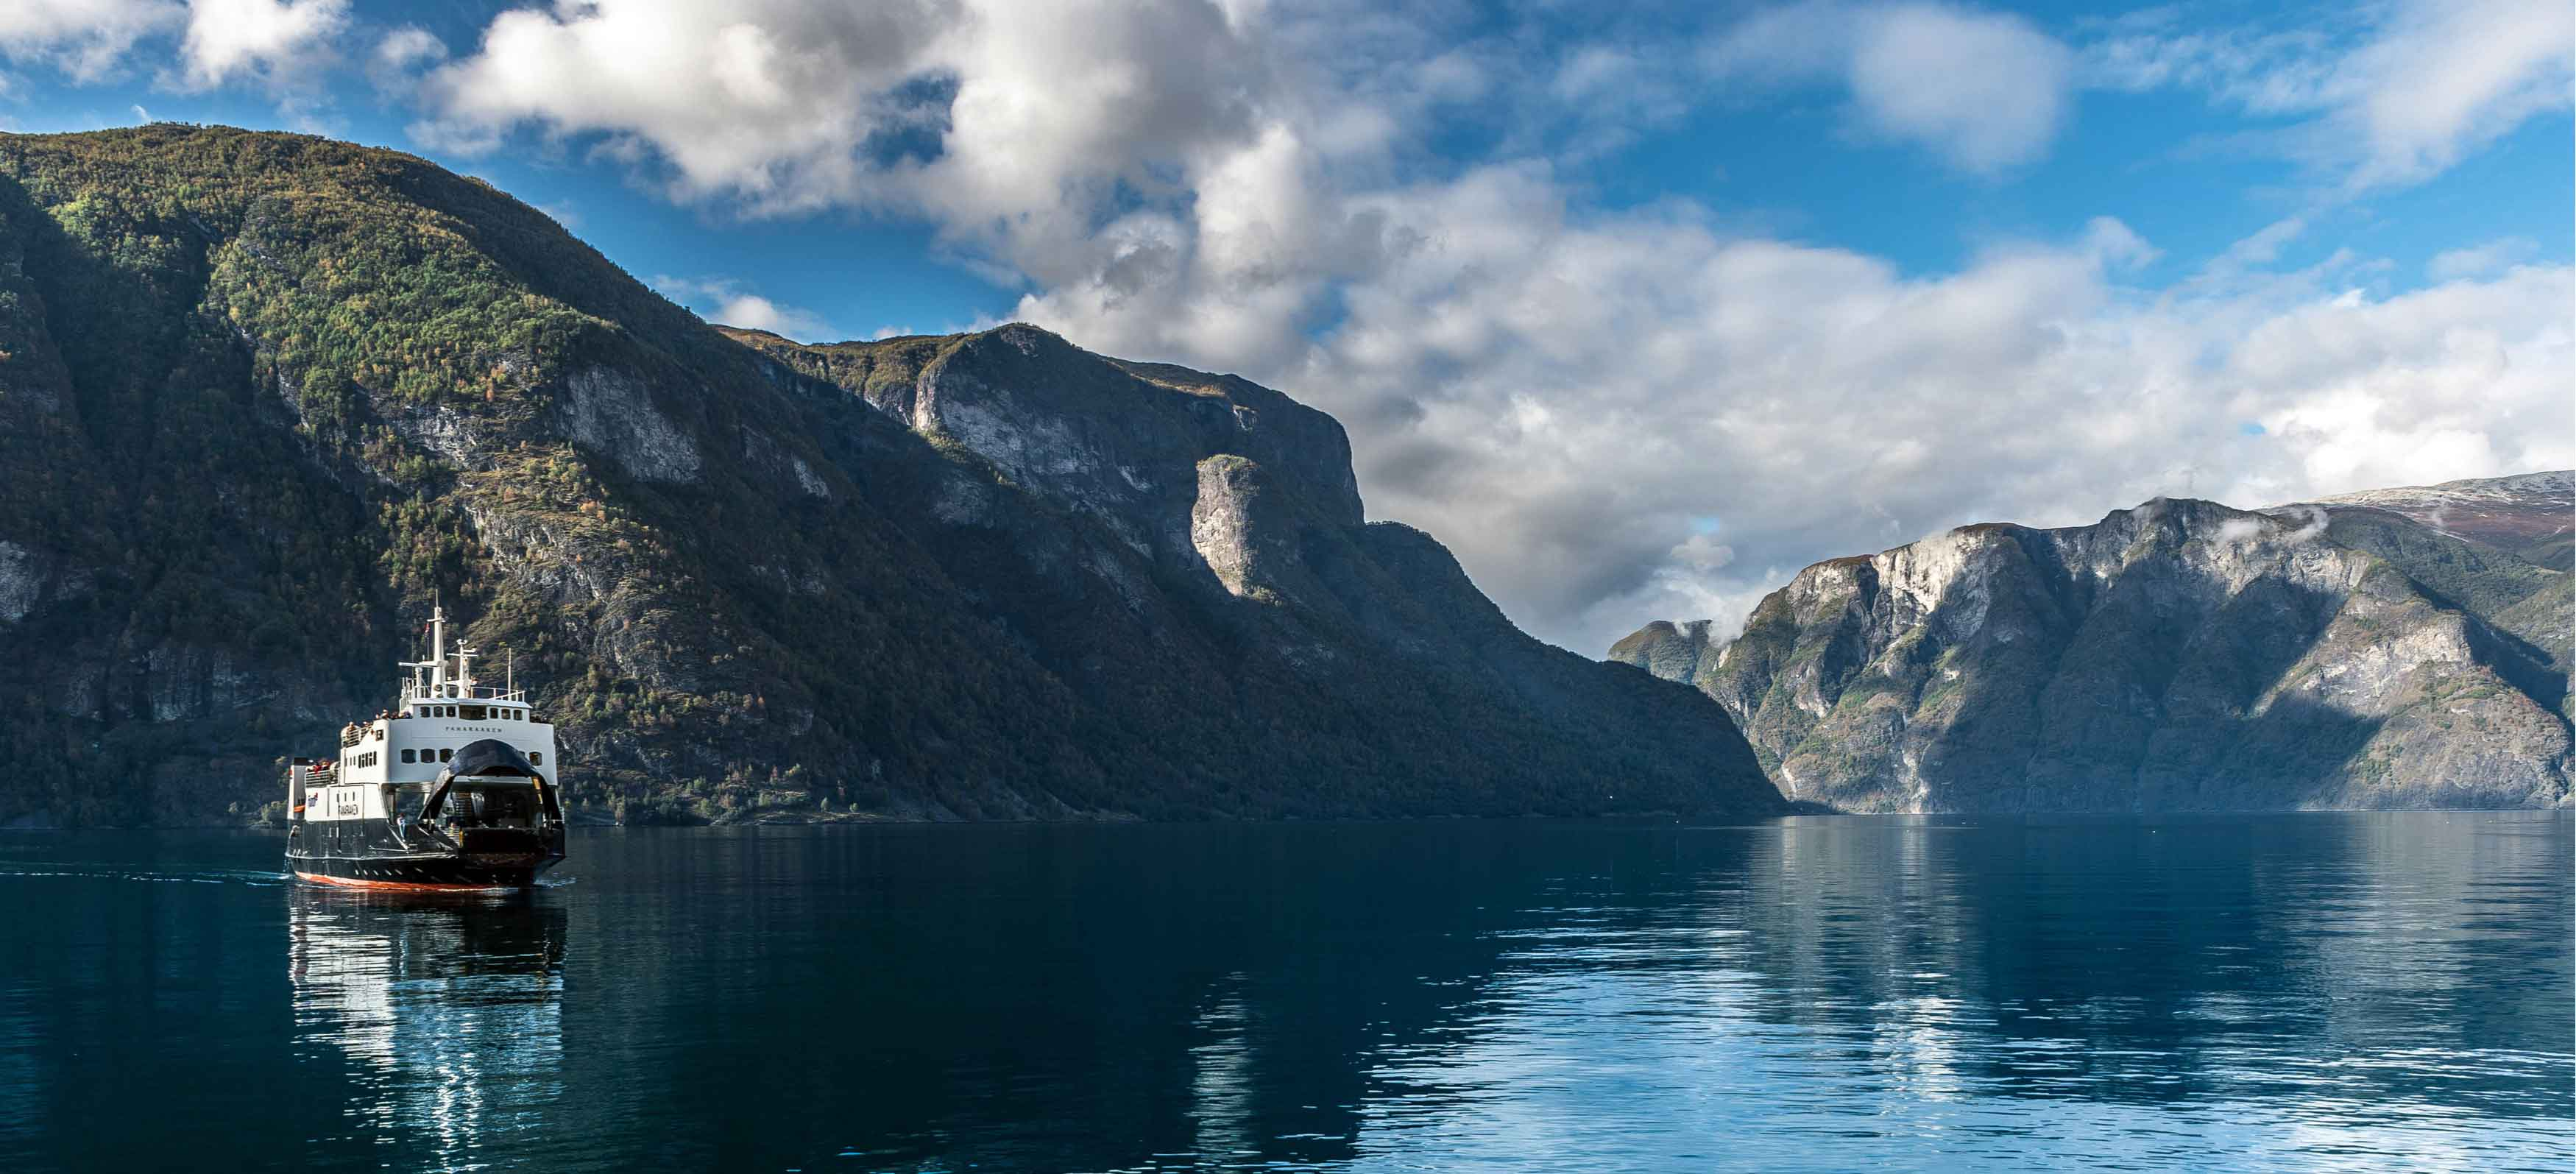 Sognefjord, the largest and deepest fjord in Norway.